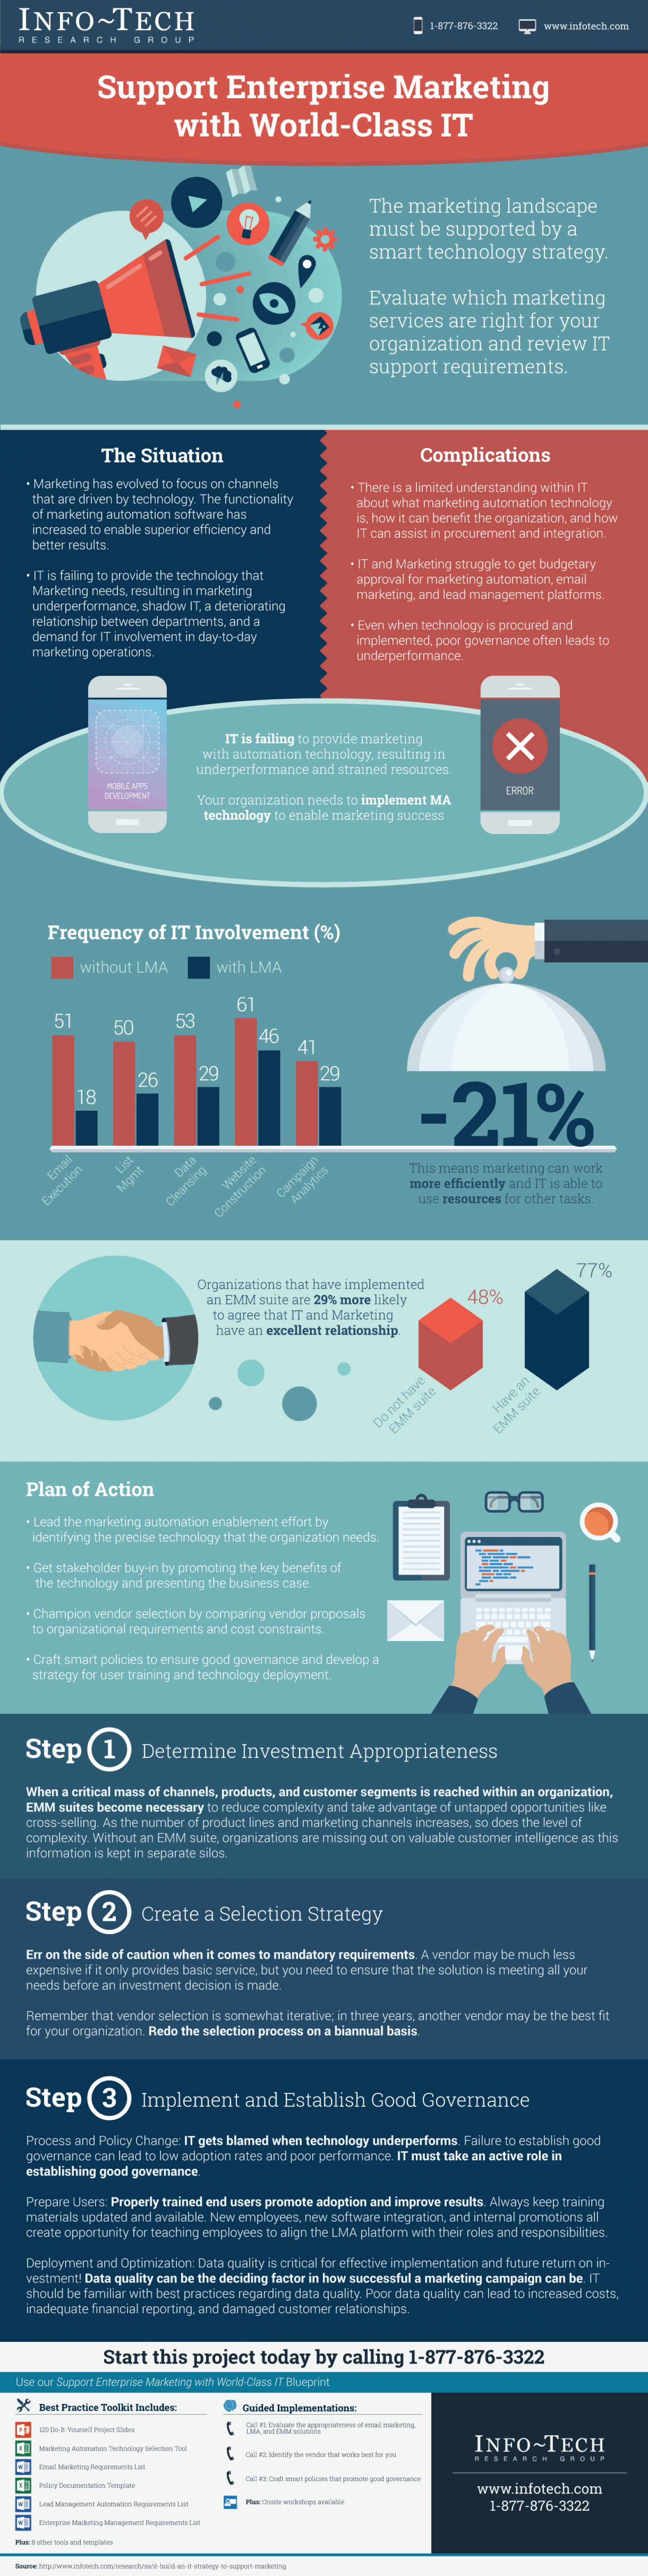 Support Enterprise Marketing with World-Class IT Infographic